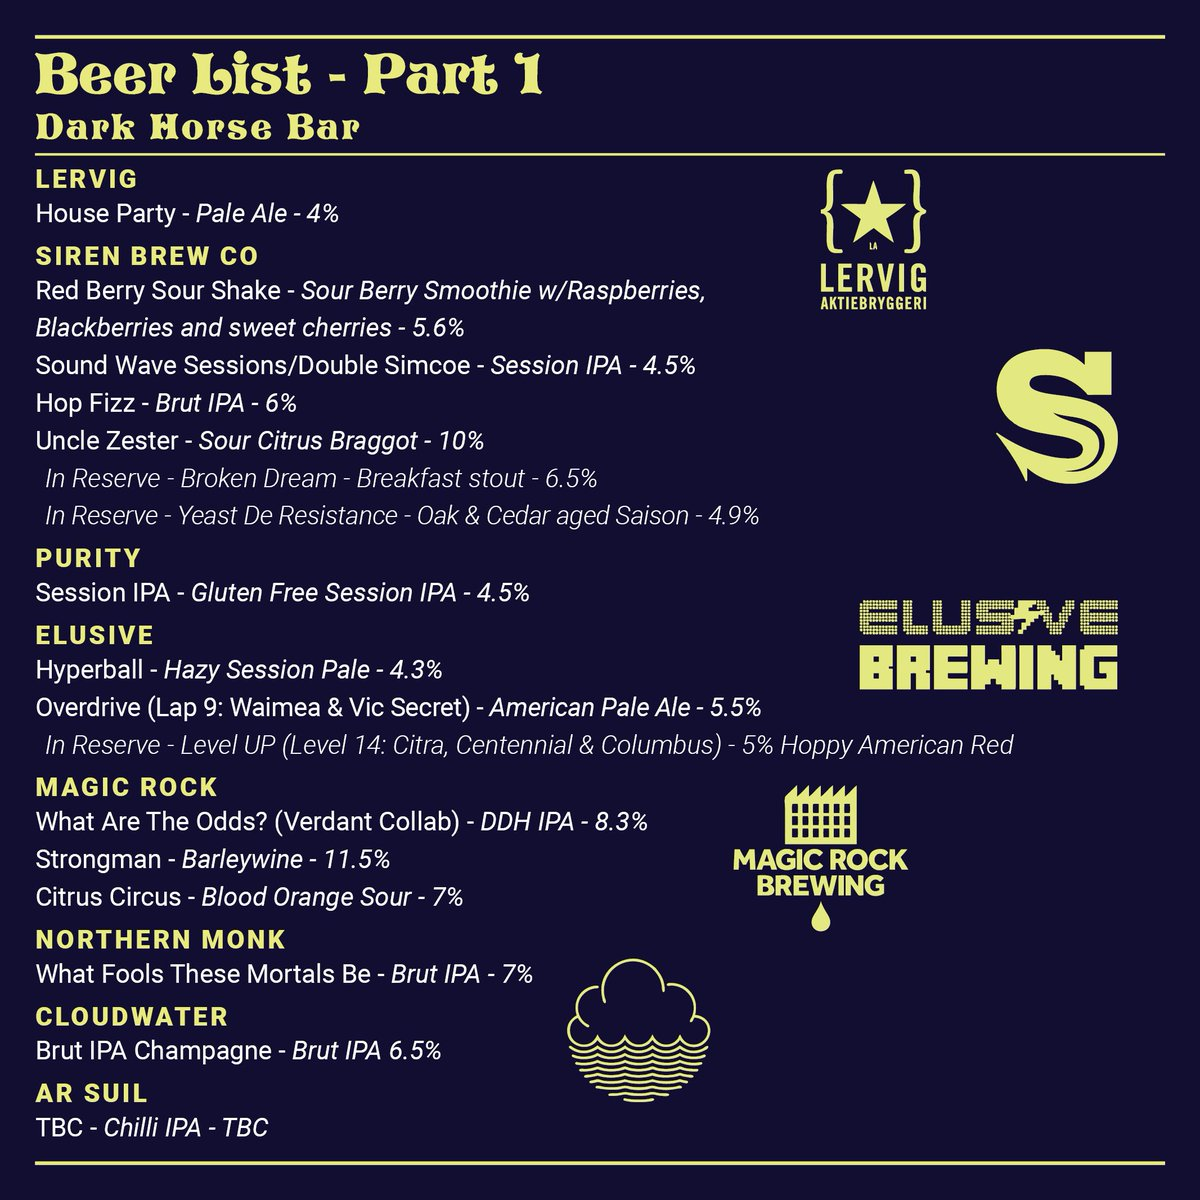 B-B-B-B-BEER LIST! It's been long awaited, not least by us, and it's finally here. The list is finally in for Moseley Craft Beer Festival. Feast those eyes and prepare yourselves, it all starts next Friday... #MCBF2018<br>http://pic.twitter.com/HgFDsGvtYh